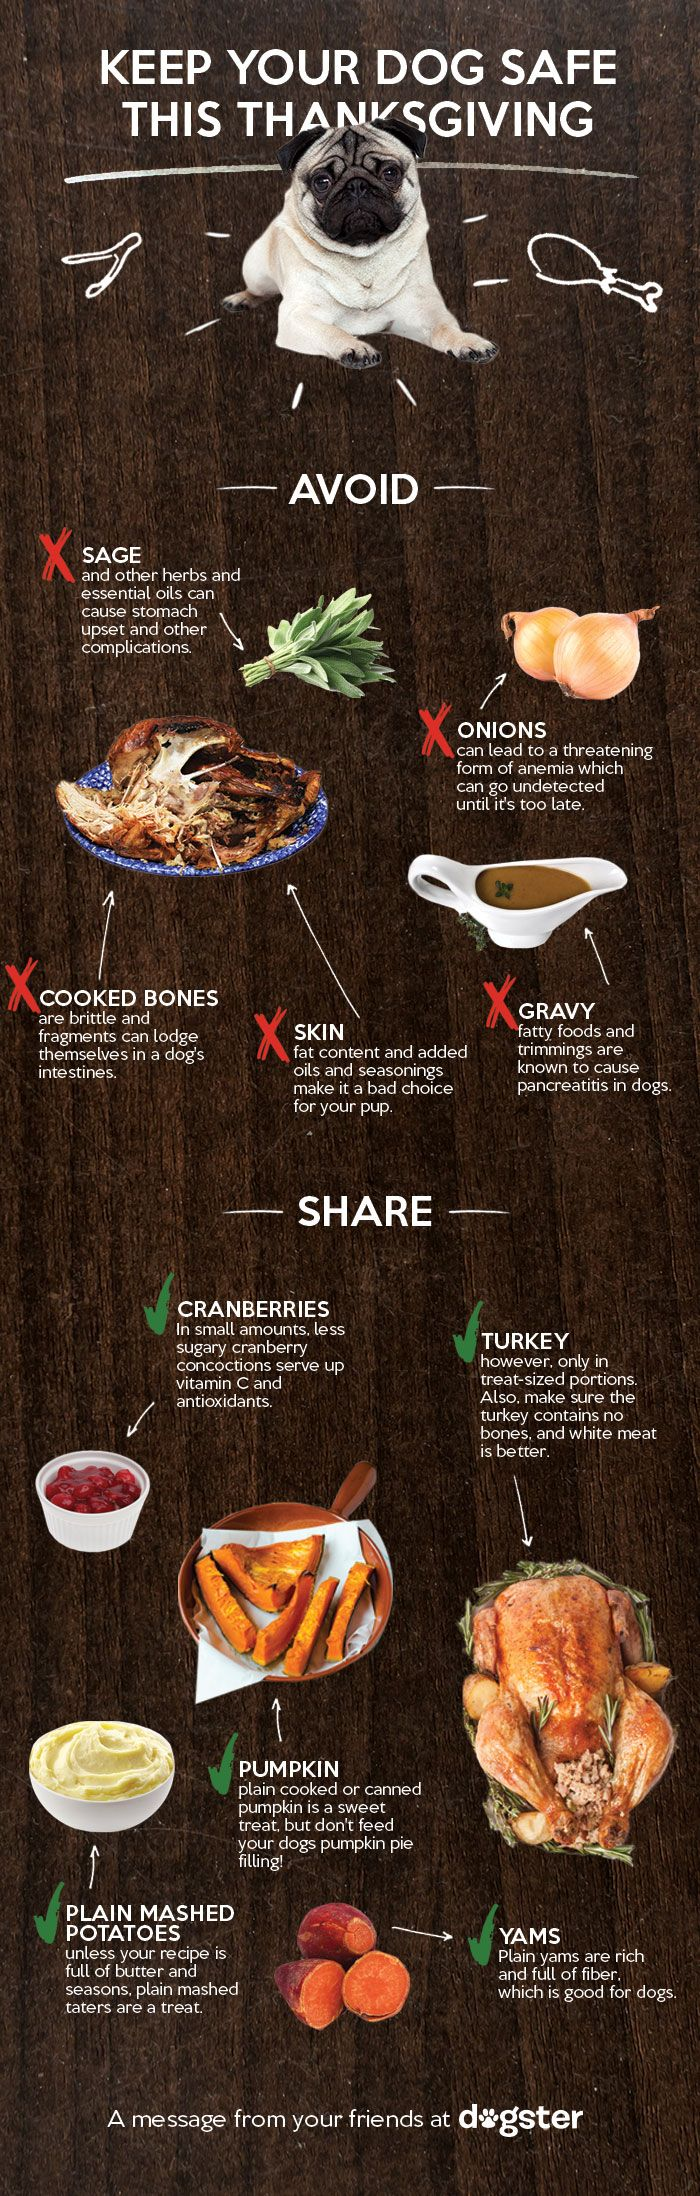 Food faith amp design thanksgiving goodies - I Know This Is A Bit Out Of Place Here But Dogs Are Cats Too Or Something Like That Infographic Which Thanksgiving Foods Are Okay To Give Your Dog